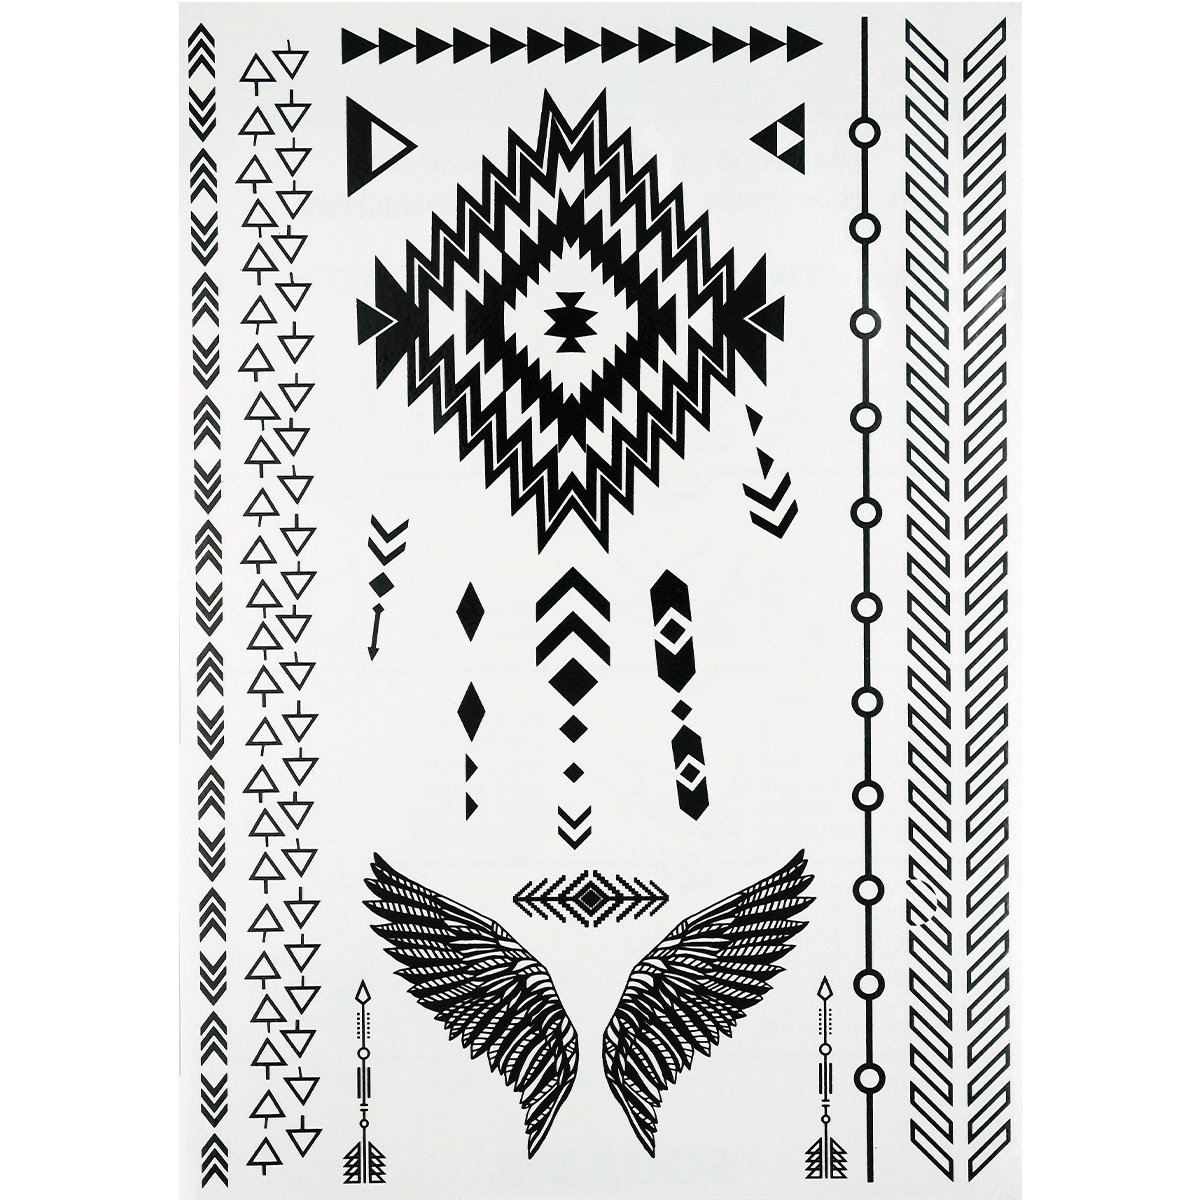 GIFT!!Tastto 6 Sheets Henna Body Paints Temporary Tattoos Black Lace Stickers for Girls and Women with GIFT by Tastto (Image #7)